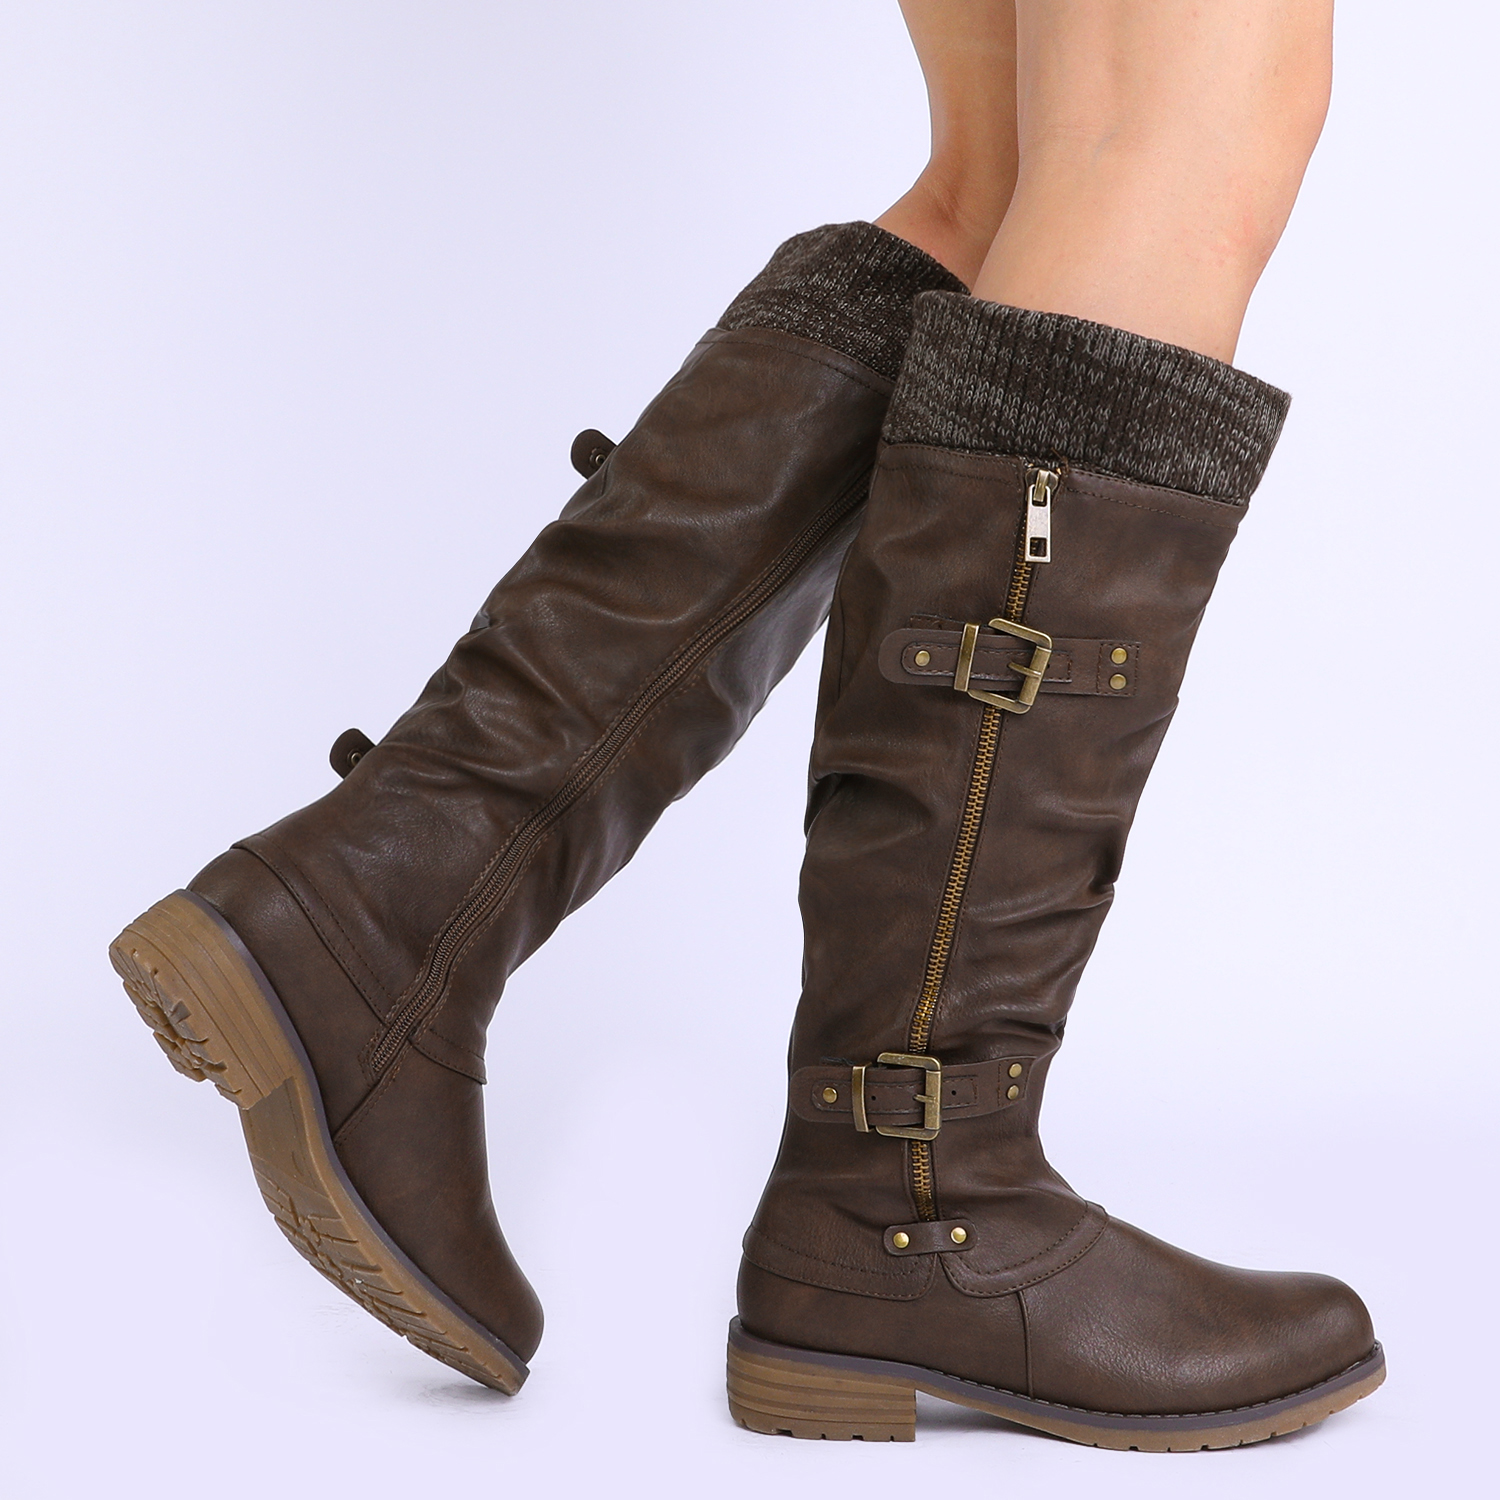 DREAM-PAIRS-Womens-DEPP-Cowgirl-Soft-PU-Leather-Combat-Knee-High-Riding-Boots thumbnail 17